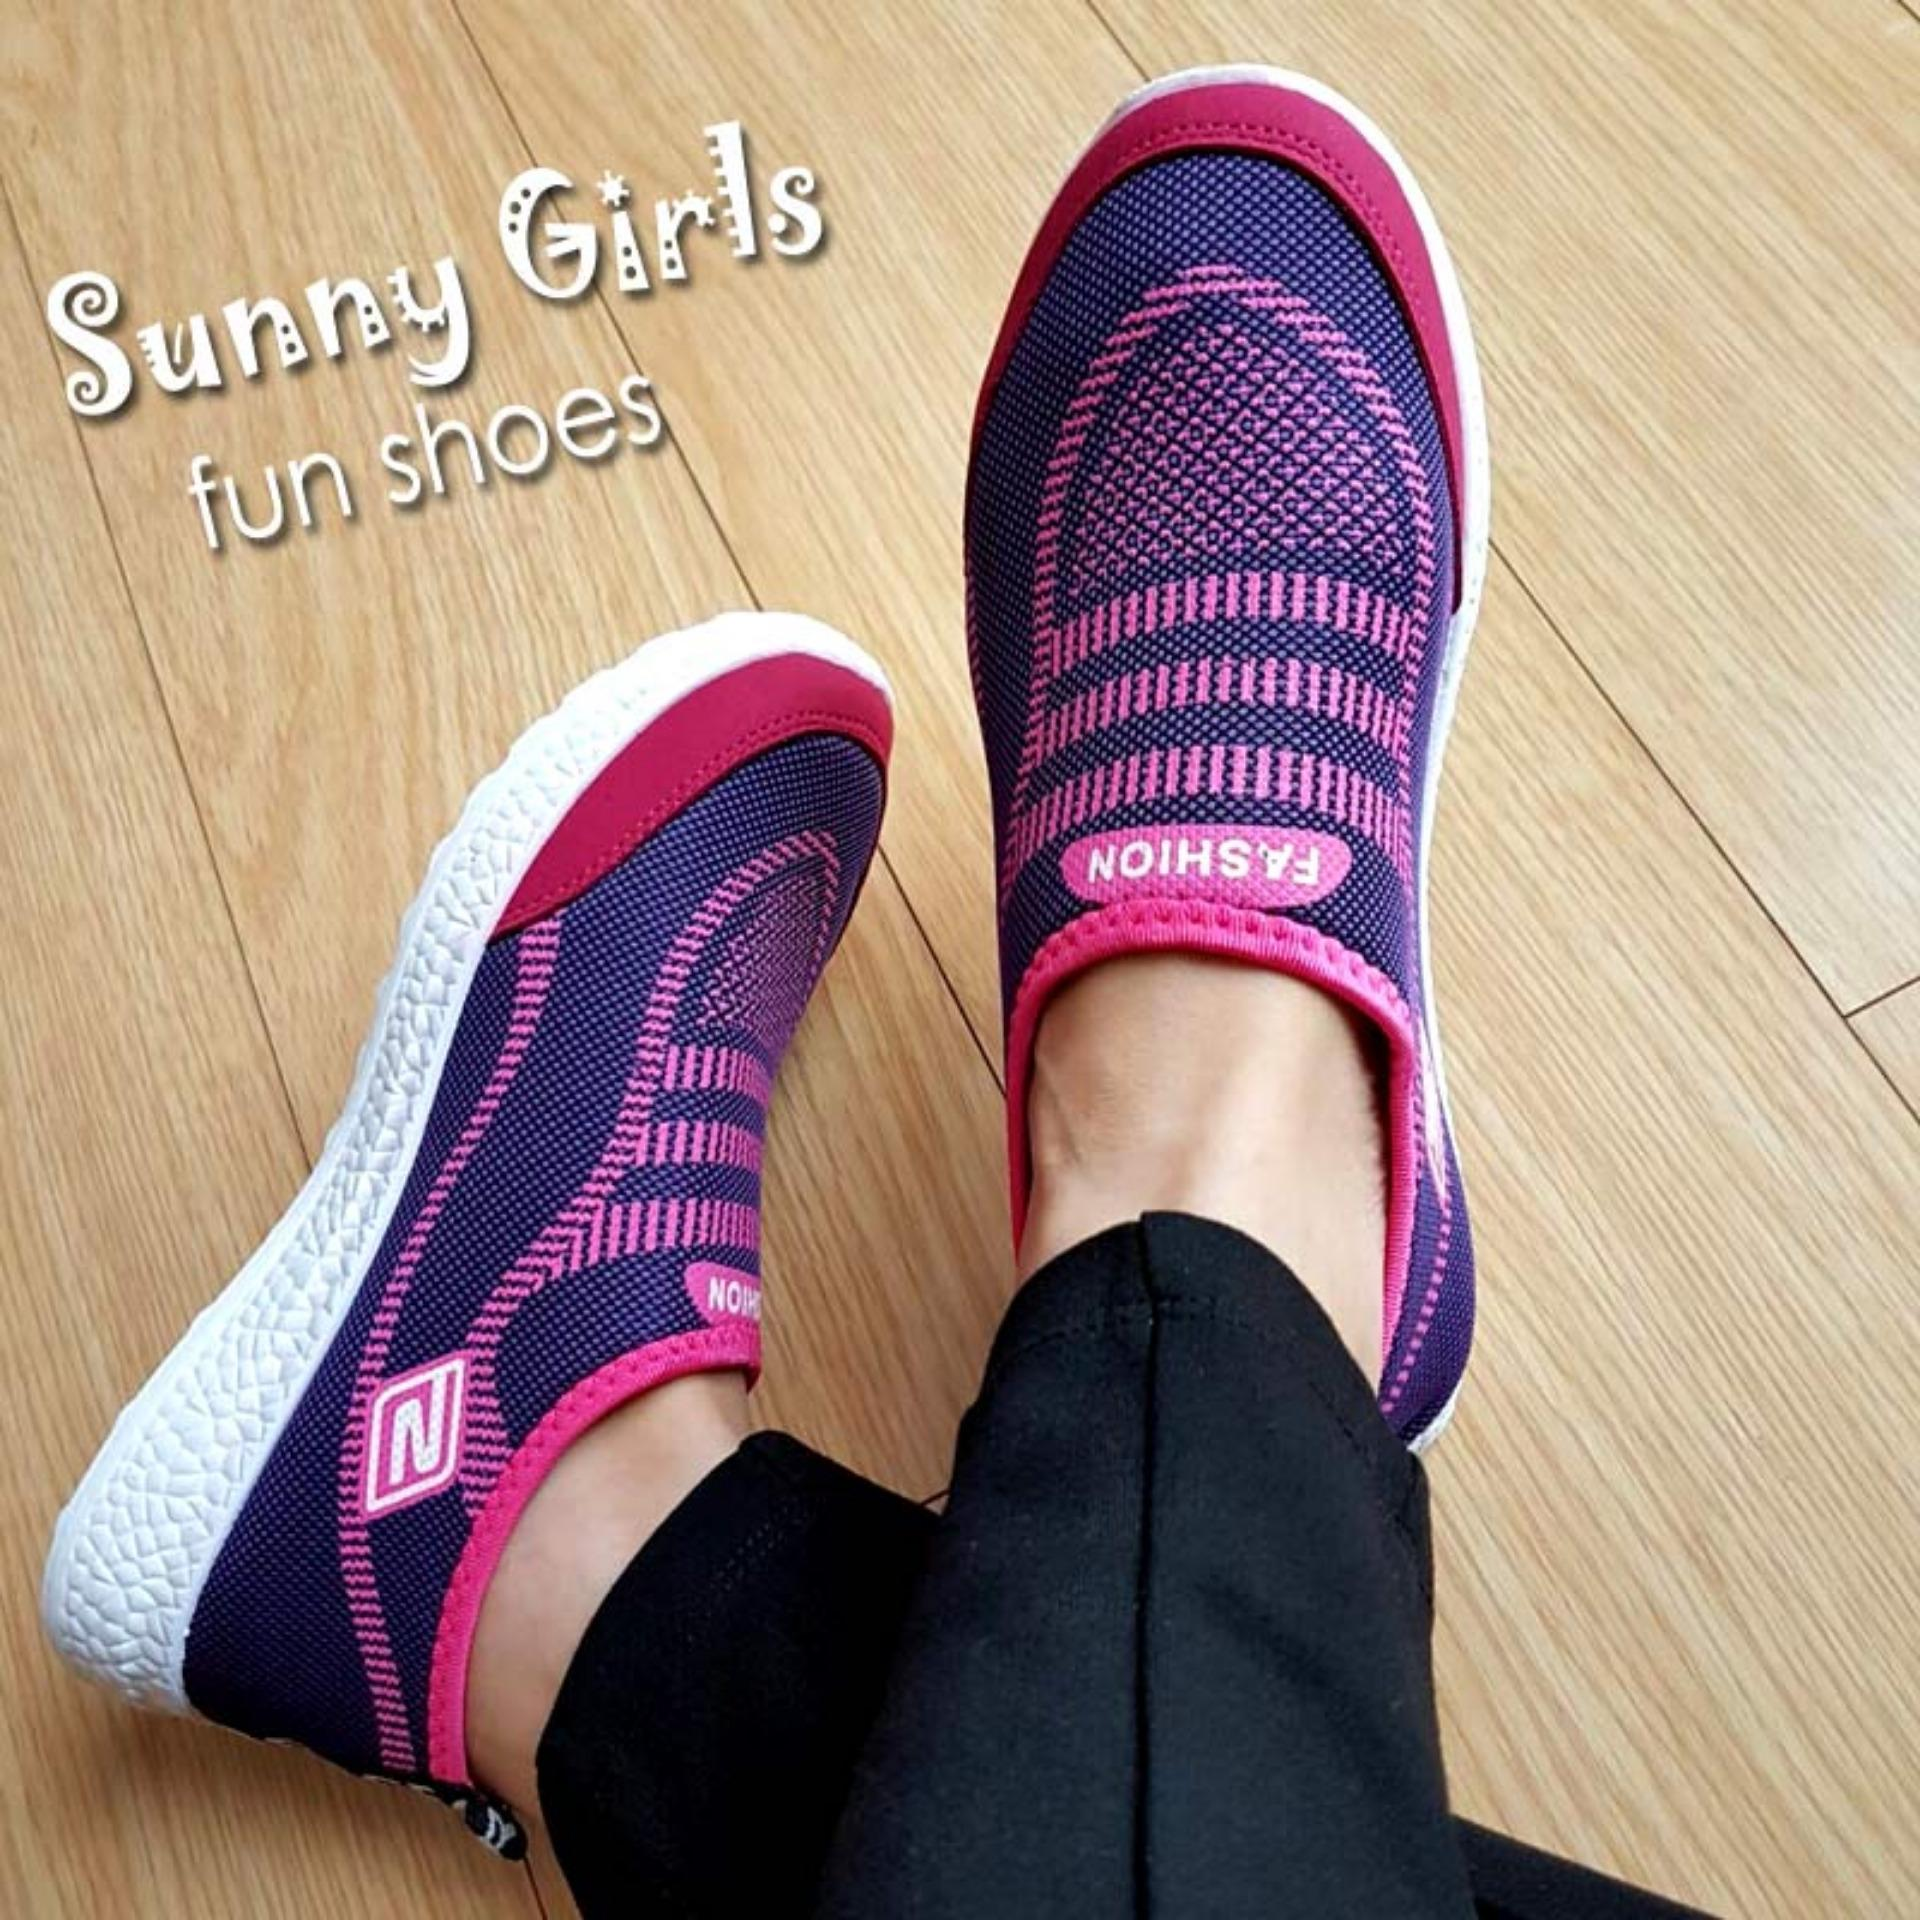 Spesifikasi Sunny Girls Amalia Comfort Shoes 603 Pink